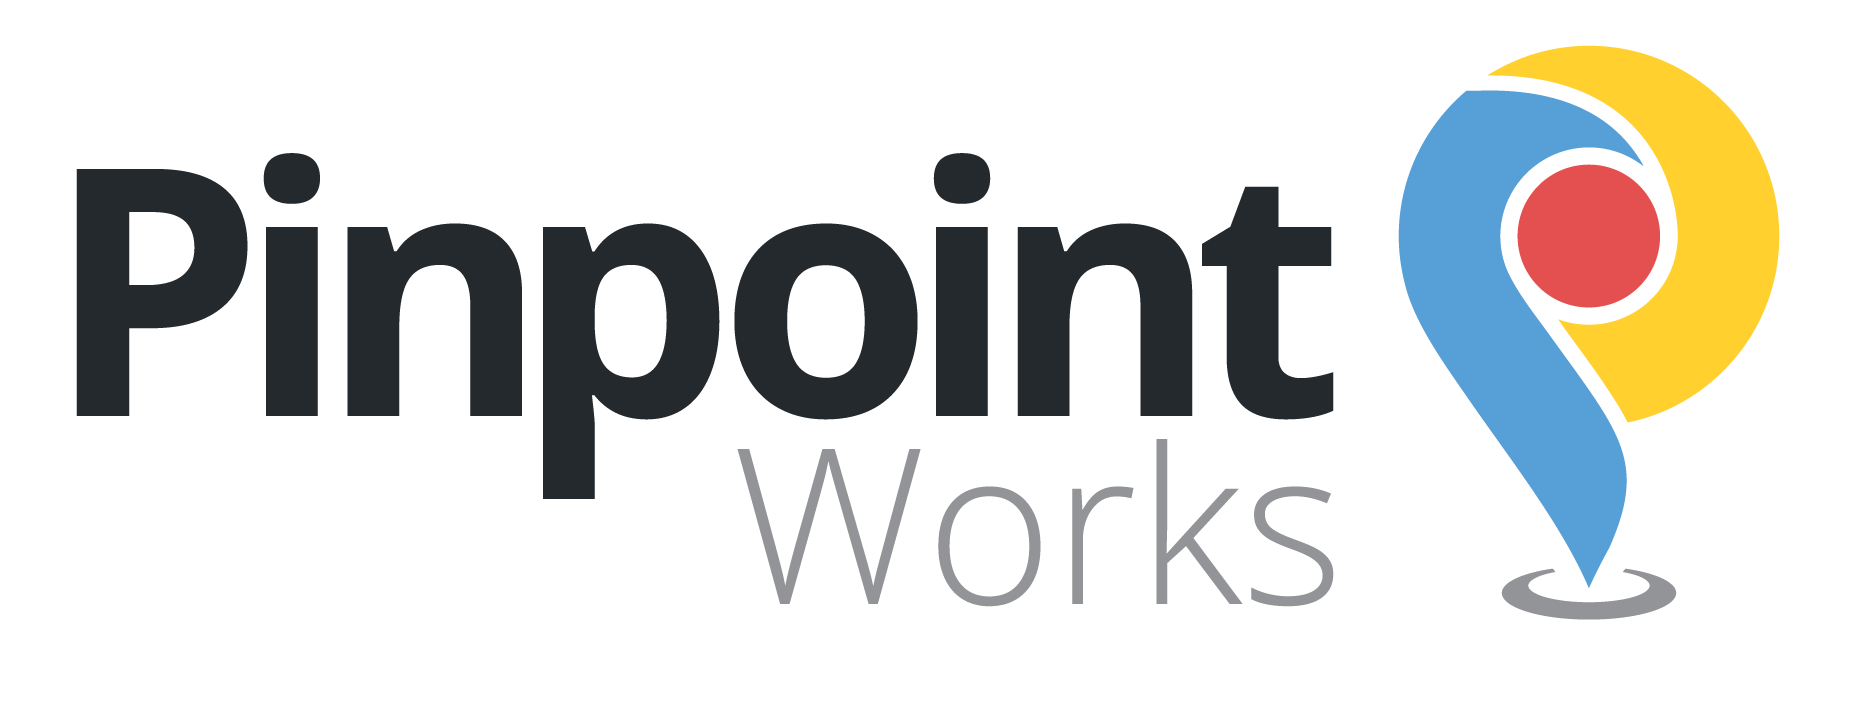 Pinpoint works